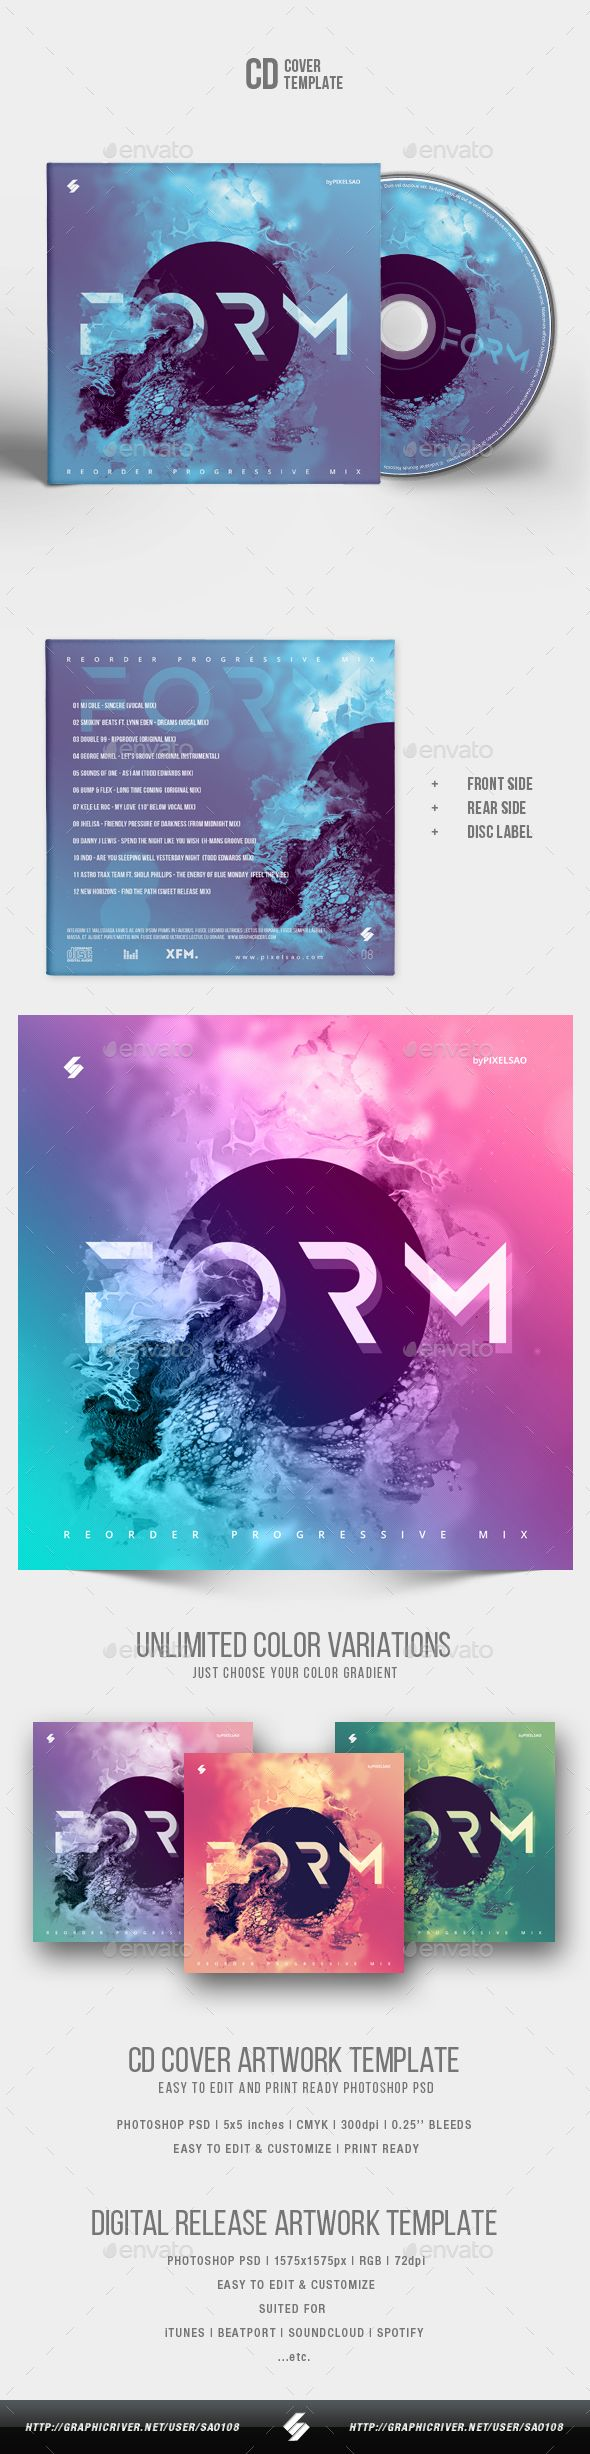 form abstract cd cover artwork template cd dvd artwork